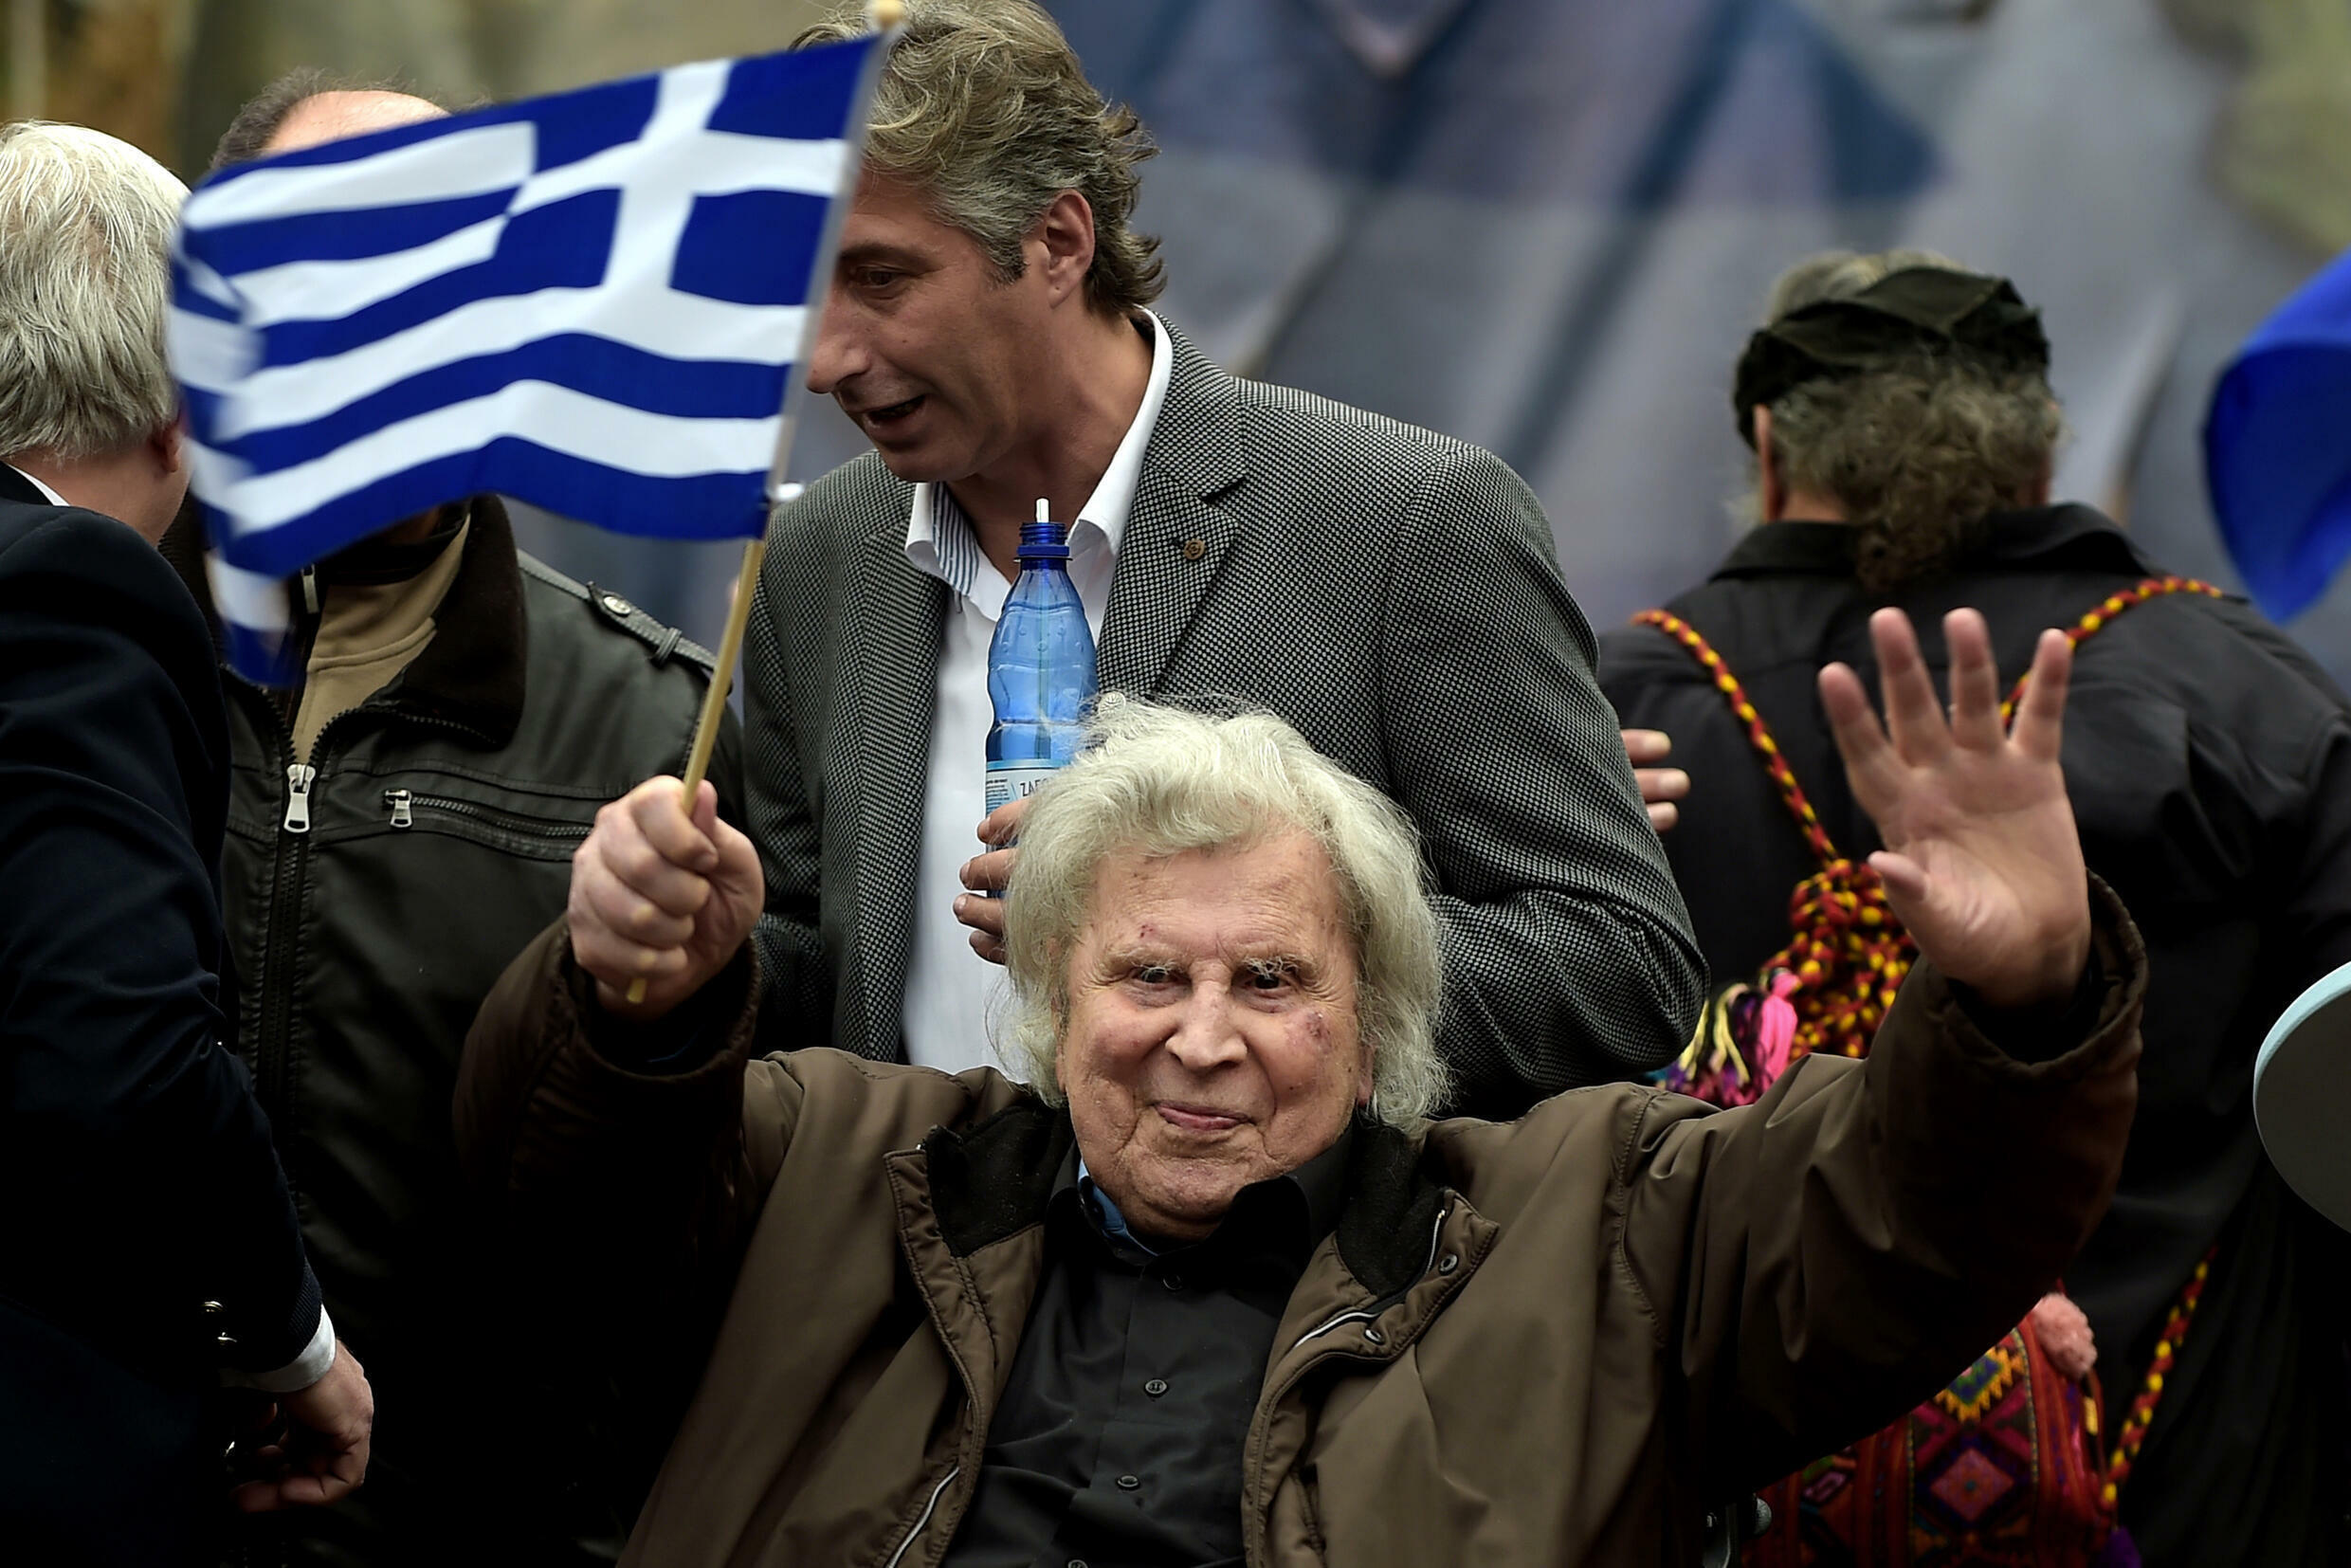 Theodorakis was adulated in his home country for his inspirational music